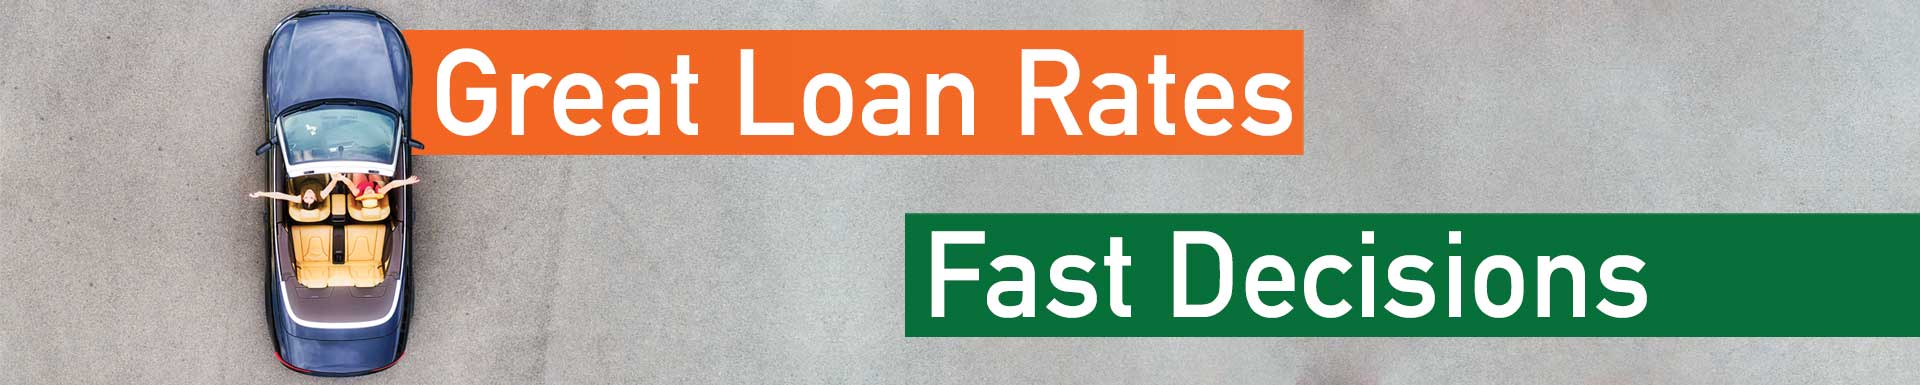 Great Loan Rates, Fast Decisions!